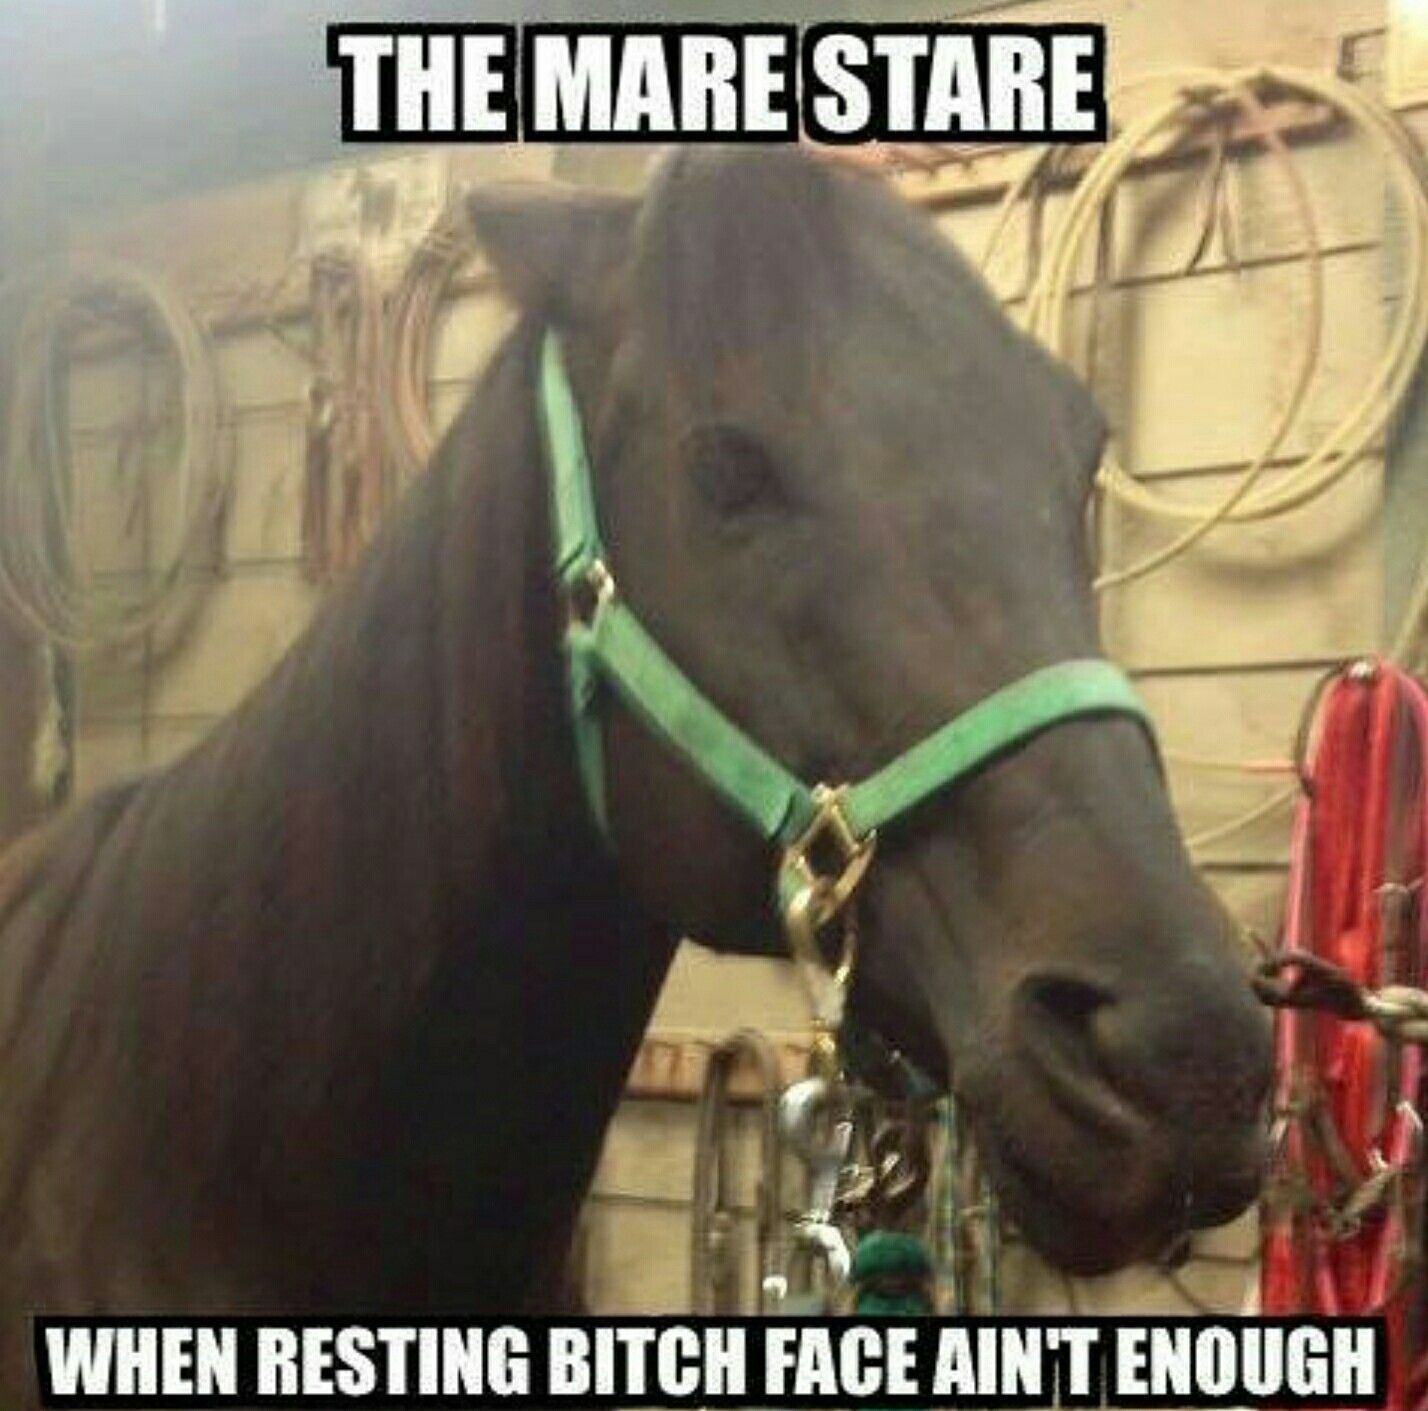 The mare the resting bitch face ain't enough!